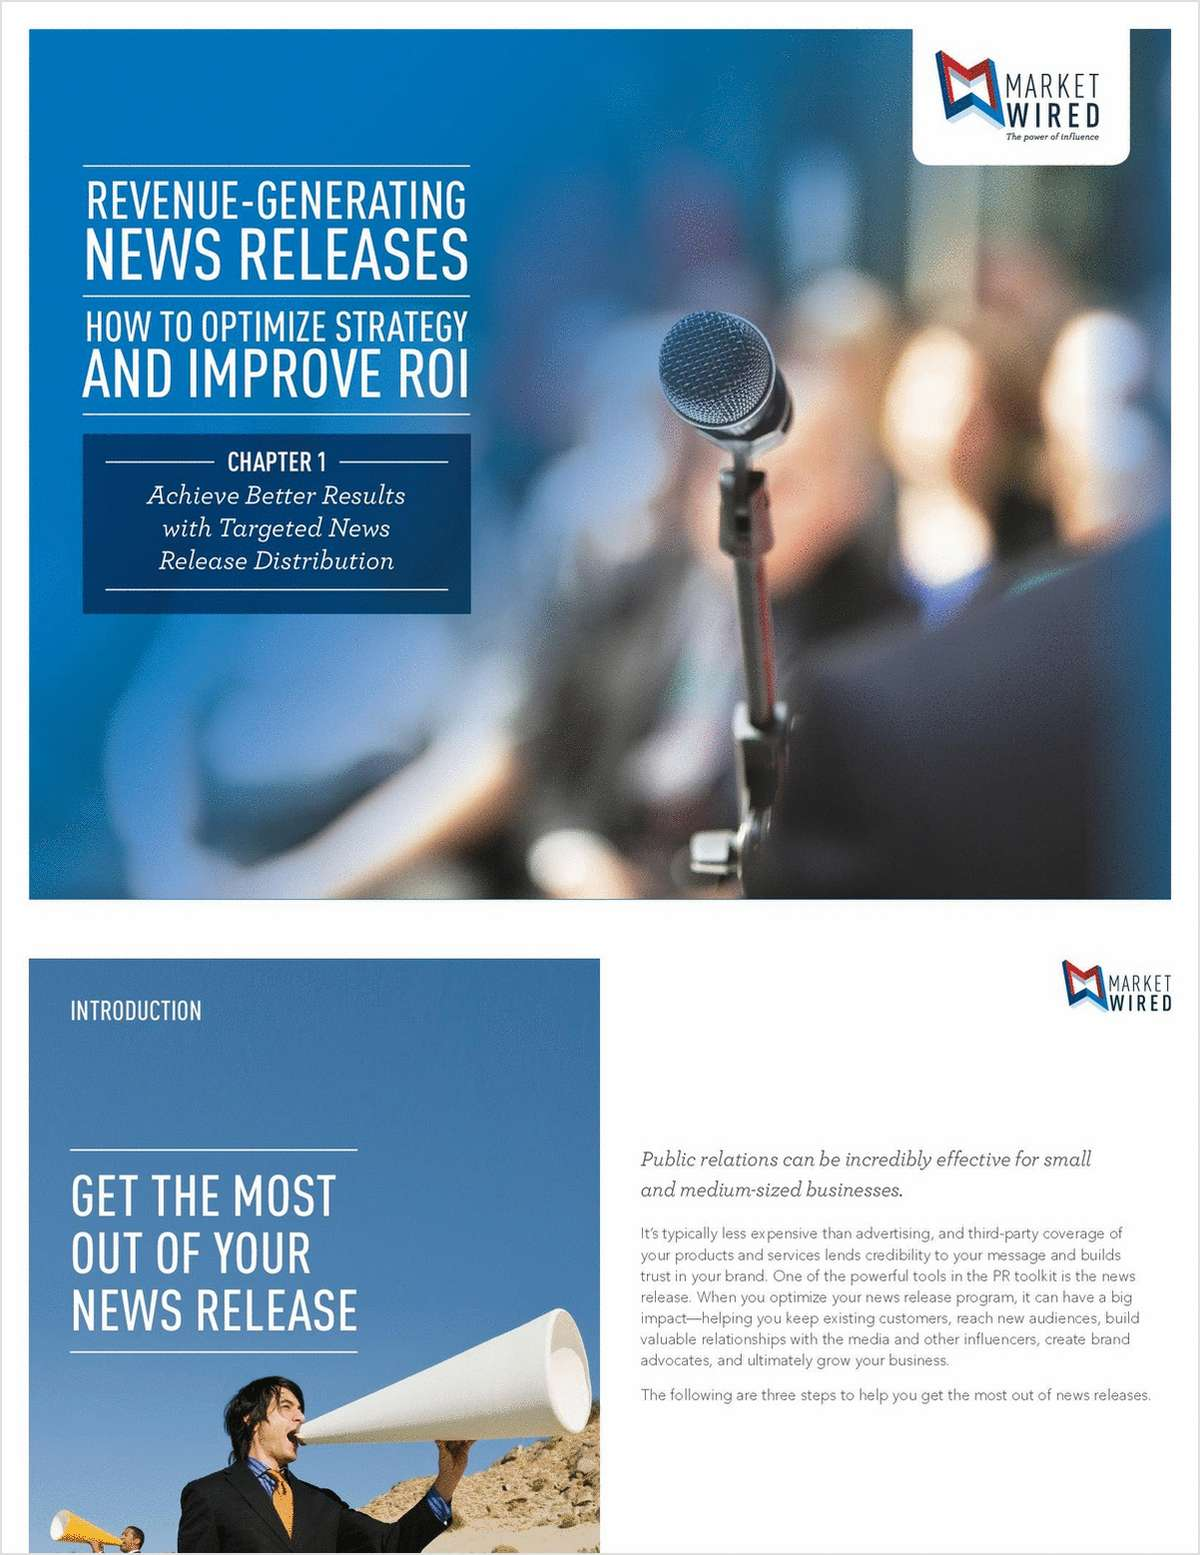 Revenue Generating News Releases: How to Optimize Strategy and Improve ROI